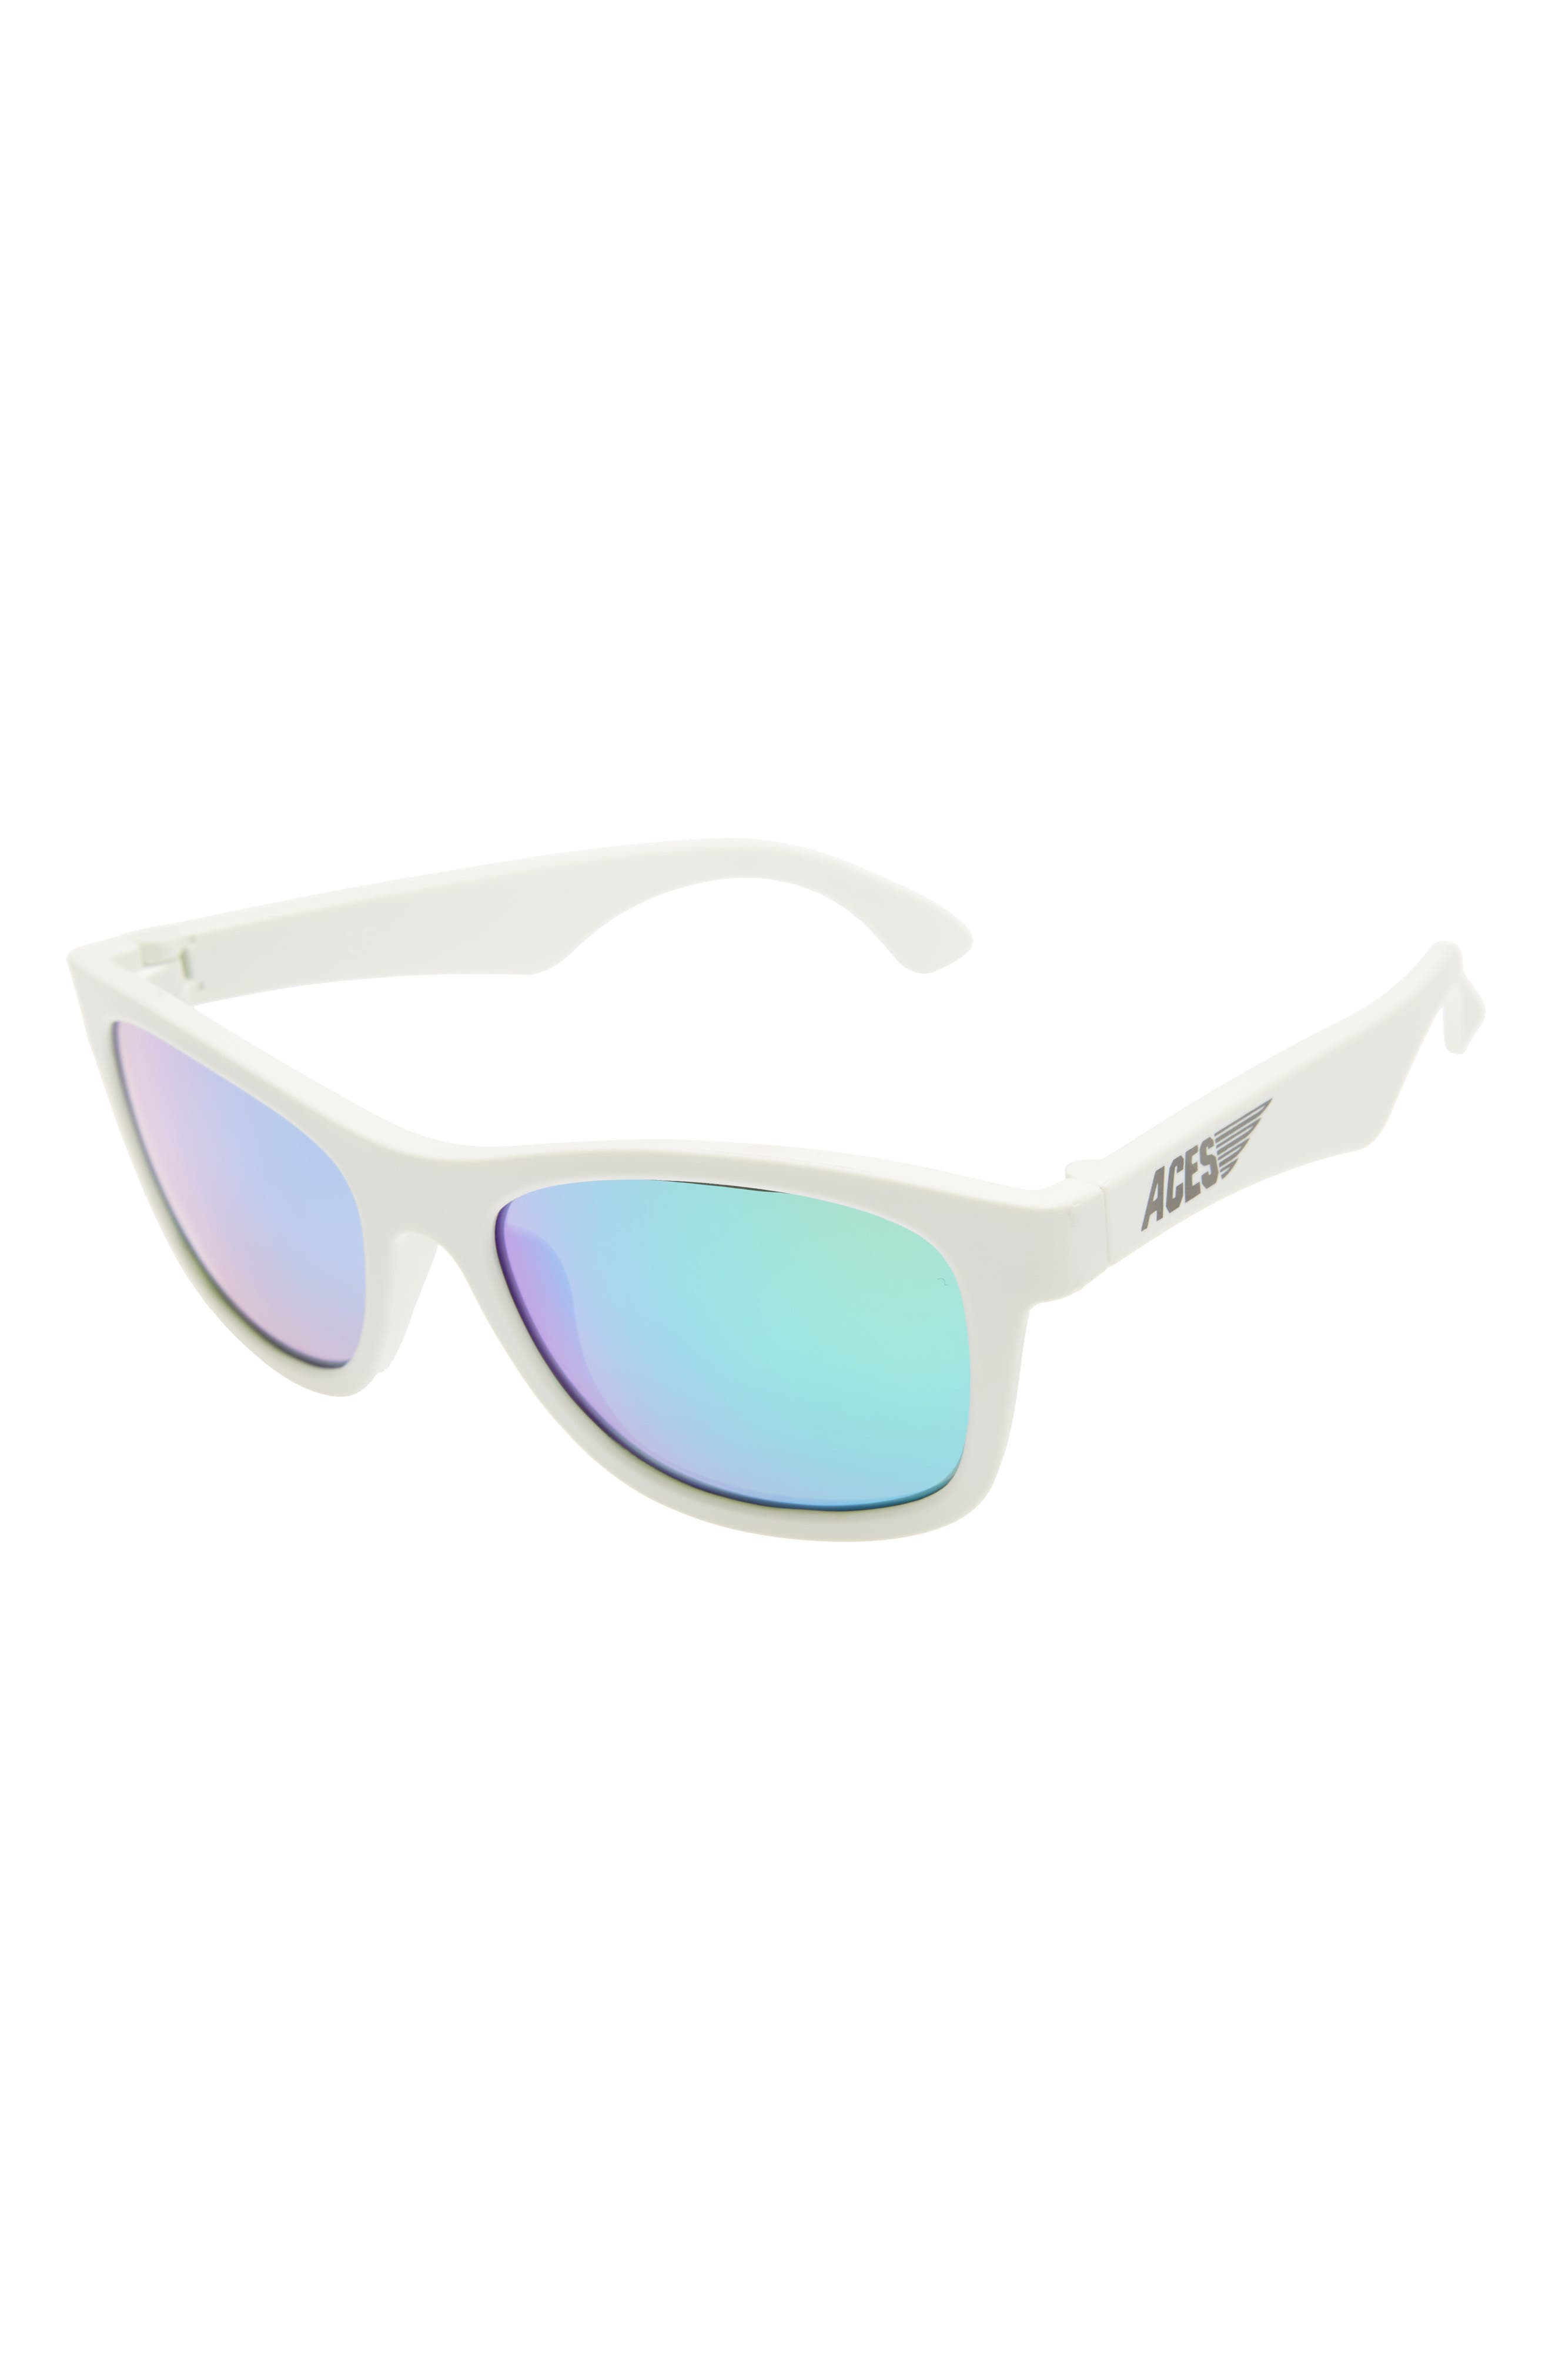 Babiators Aces Navigator Sunglasses (Big Kid)